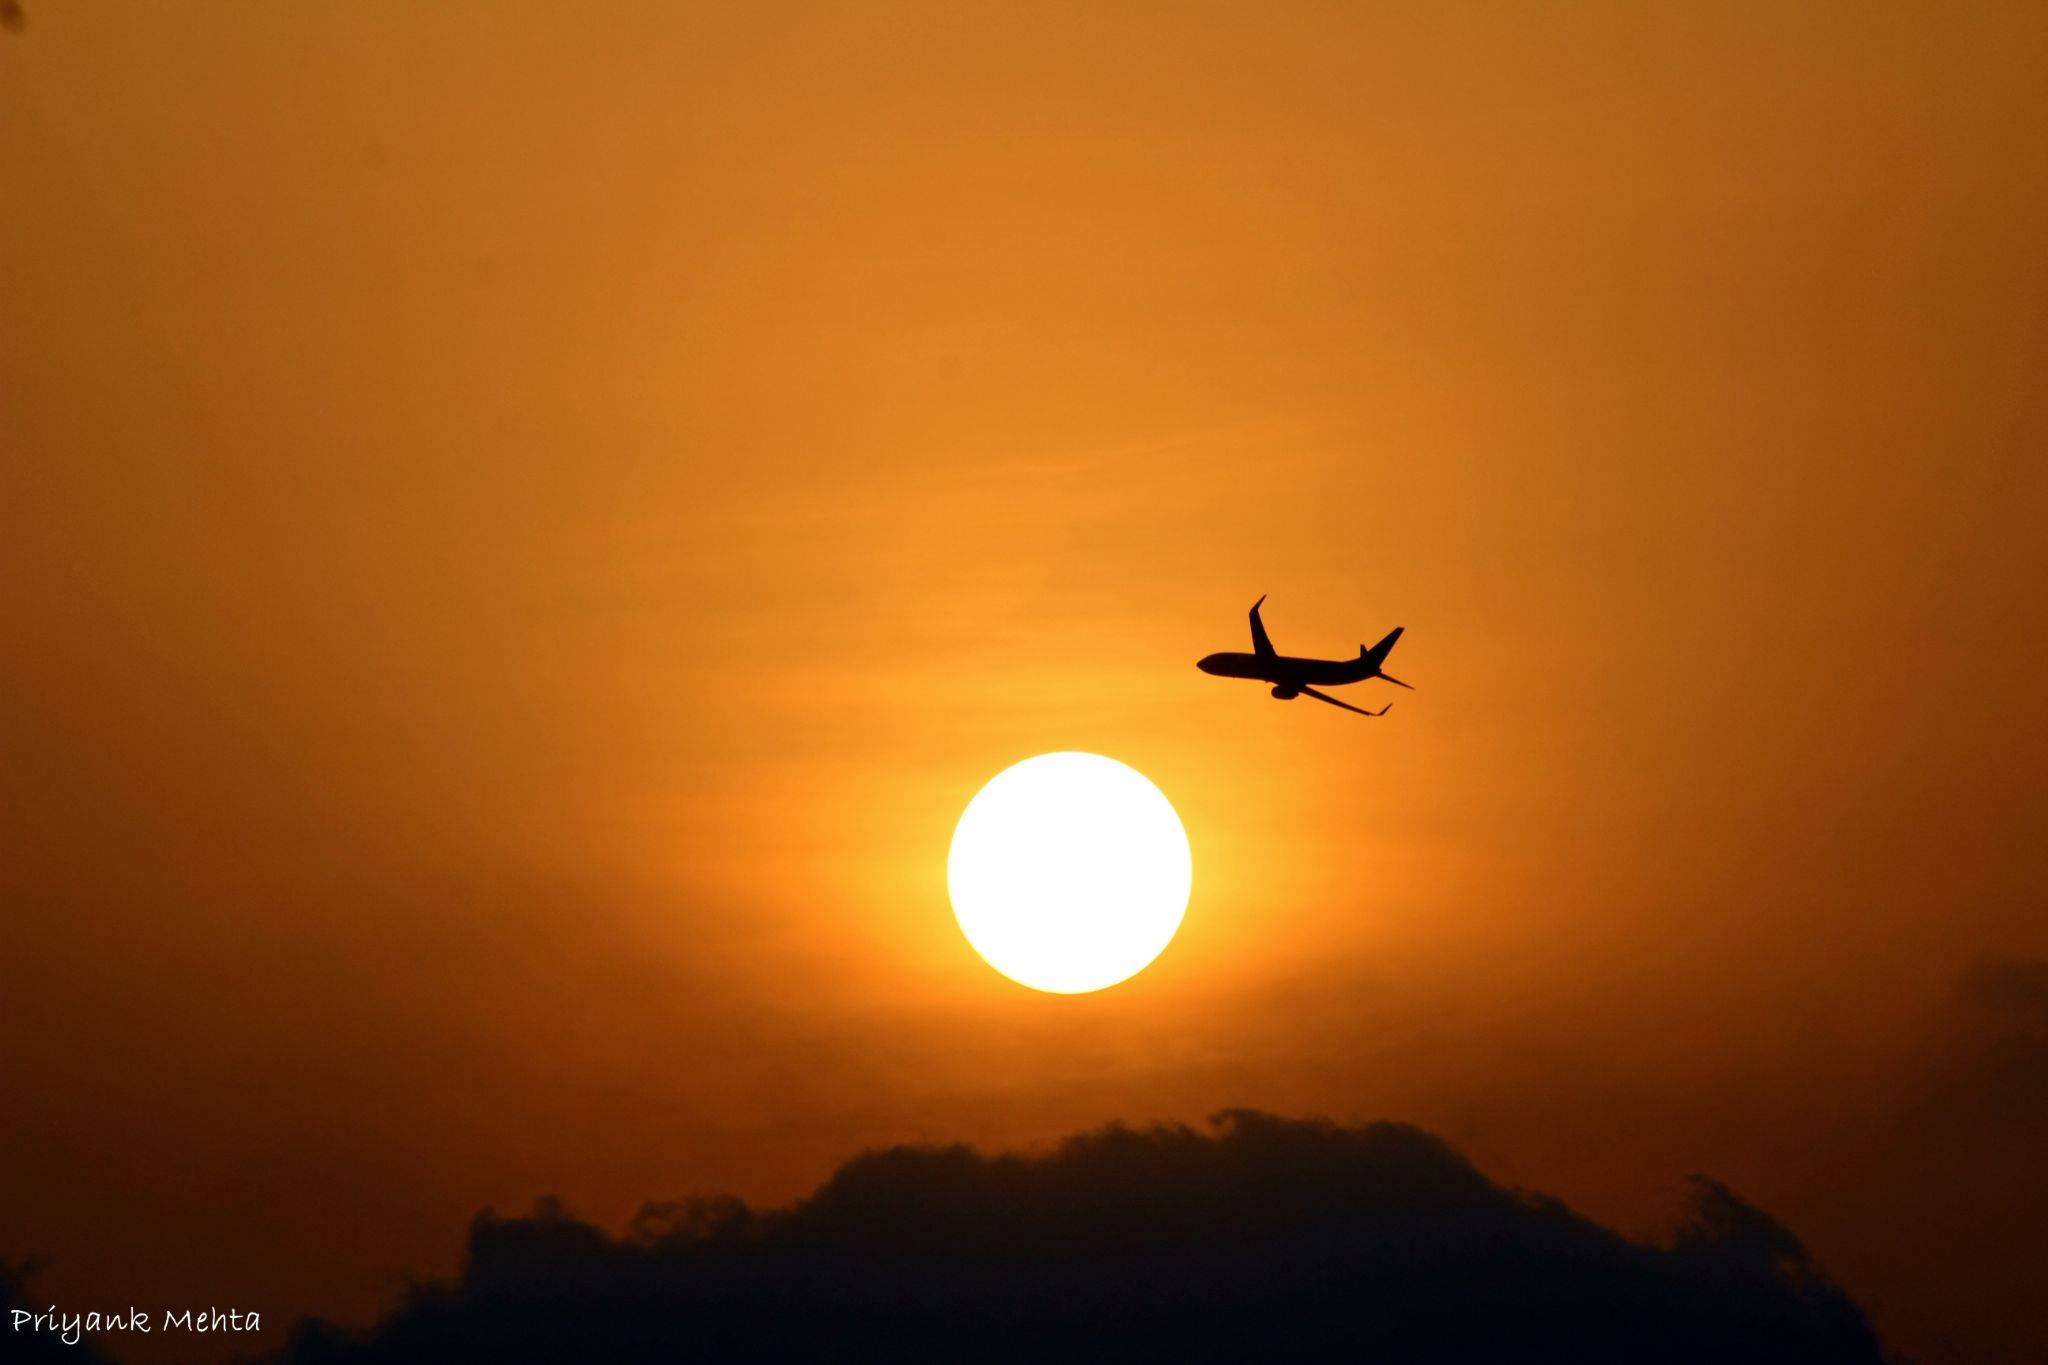 Plane With Sunset by Priyank J Mehta